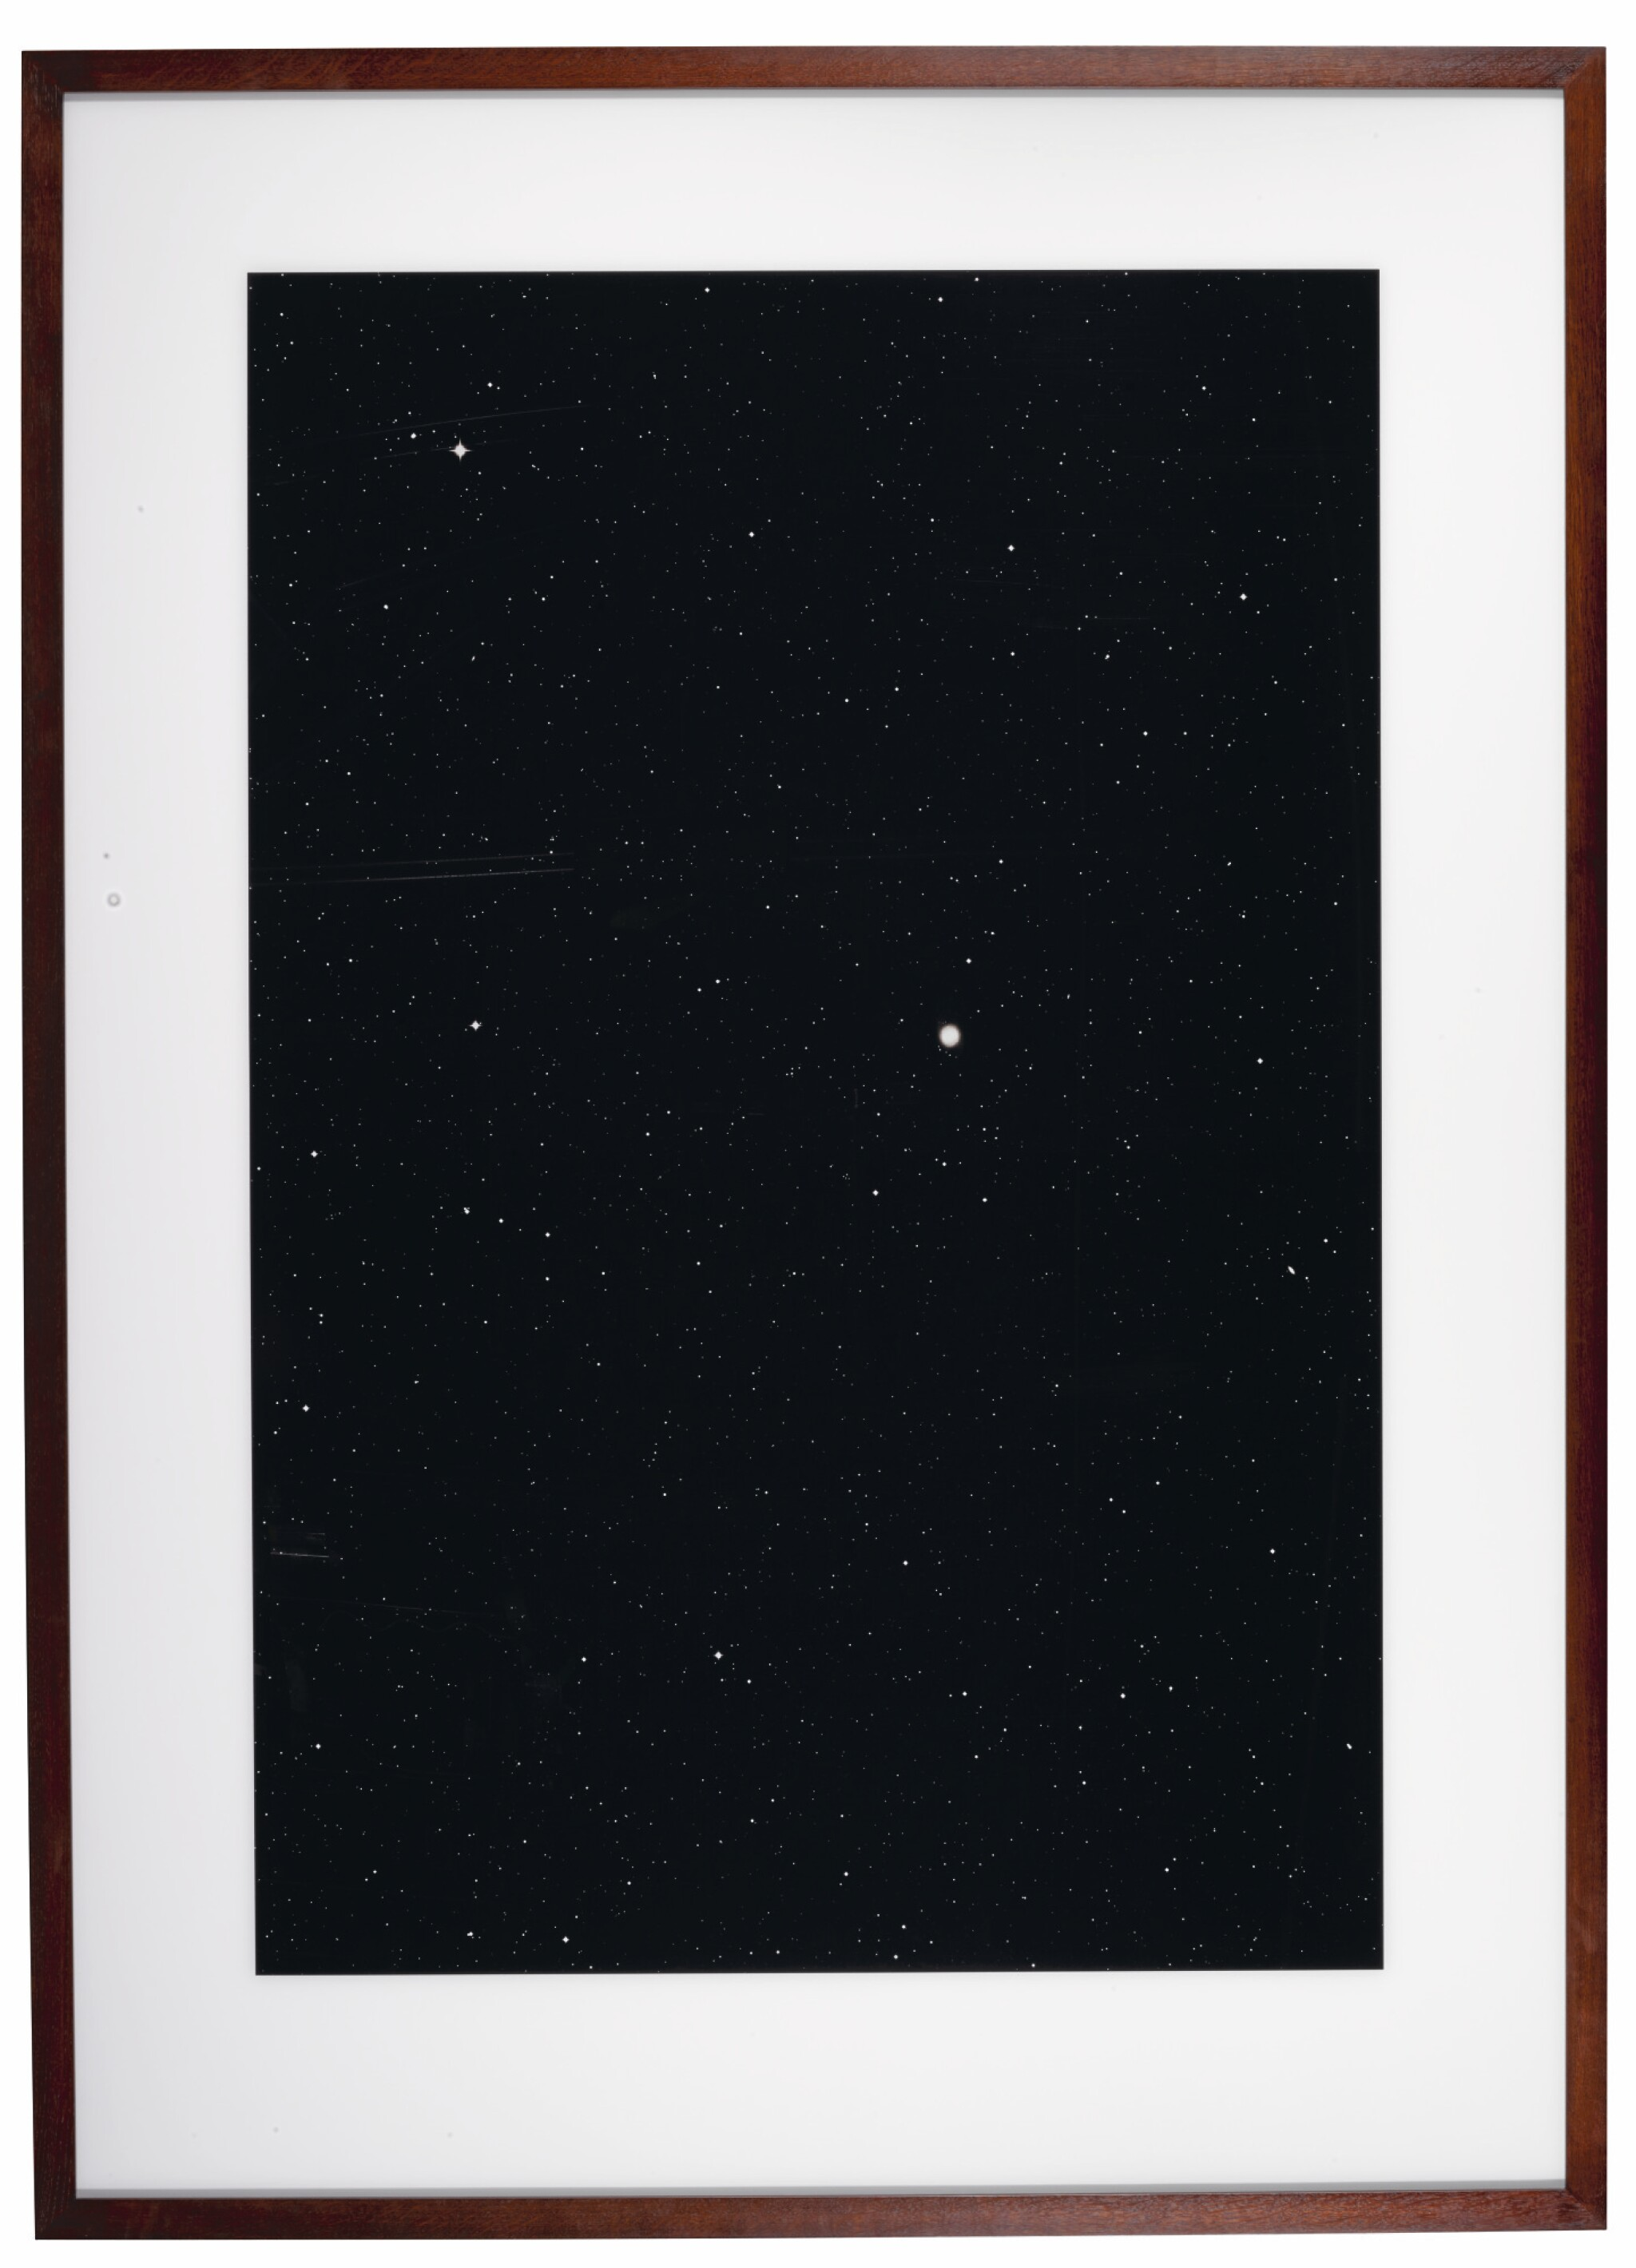 View 1 of Lot 86. THOMAS RUFF | '03H40M/-25°' (FROM THE SERIES STERNE), 1992.